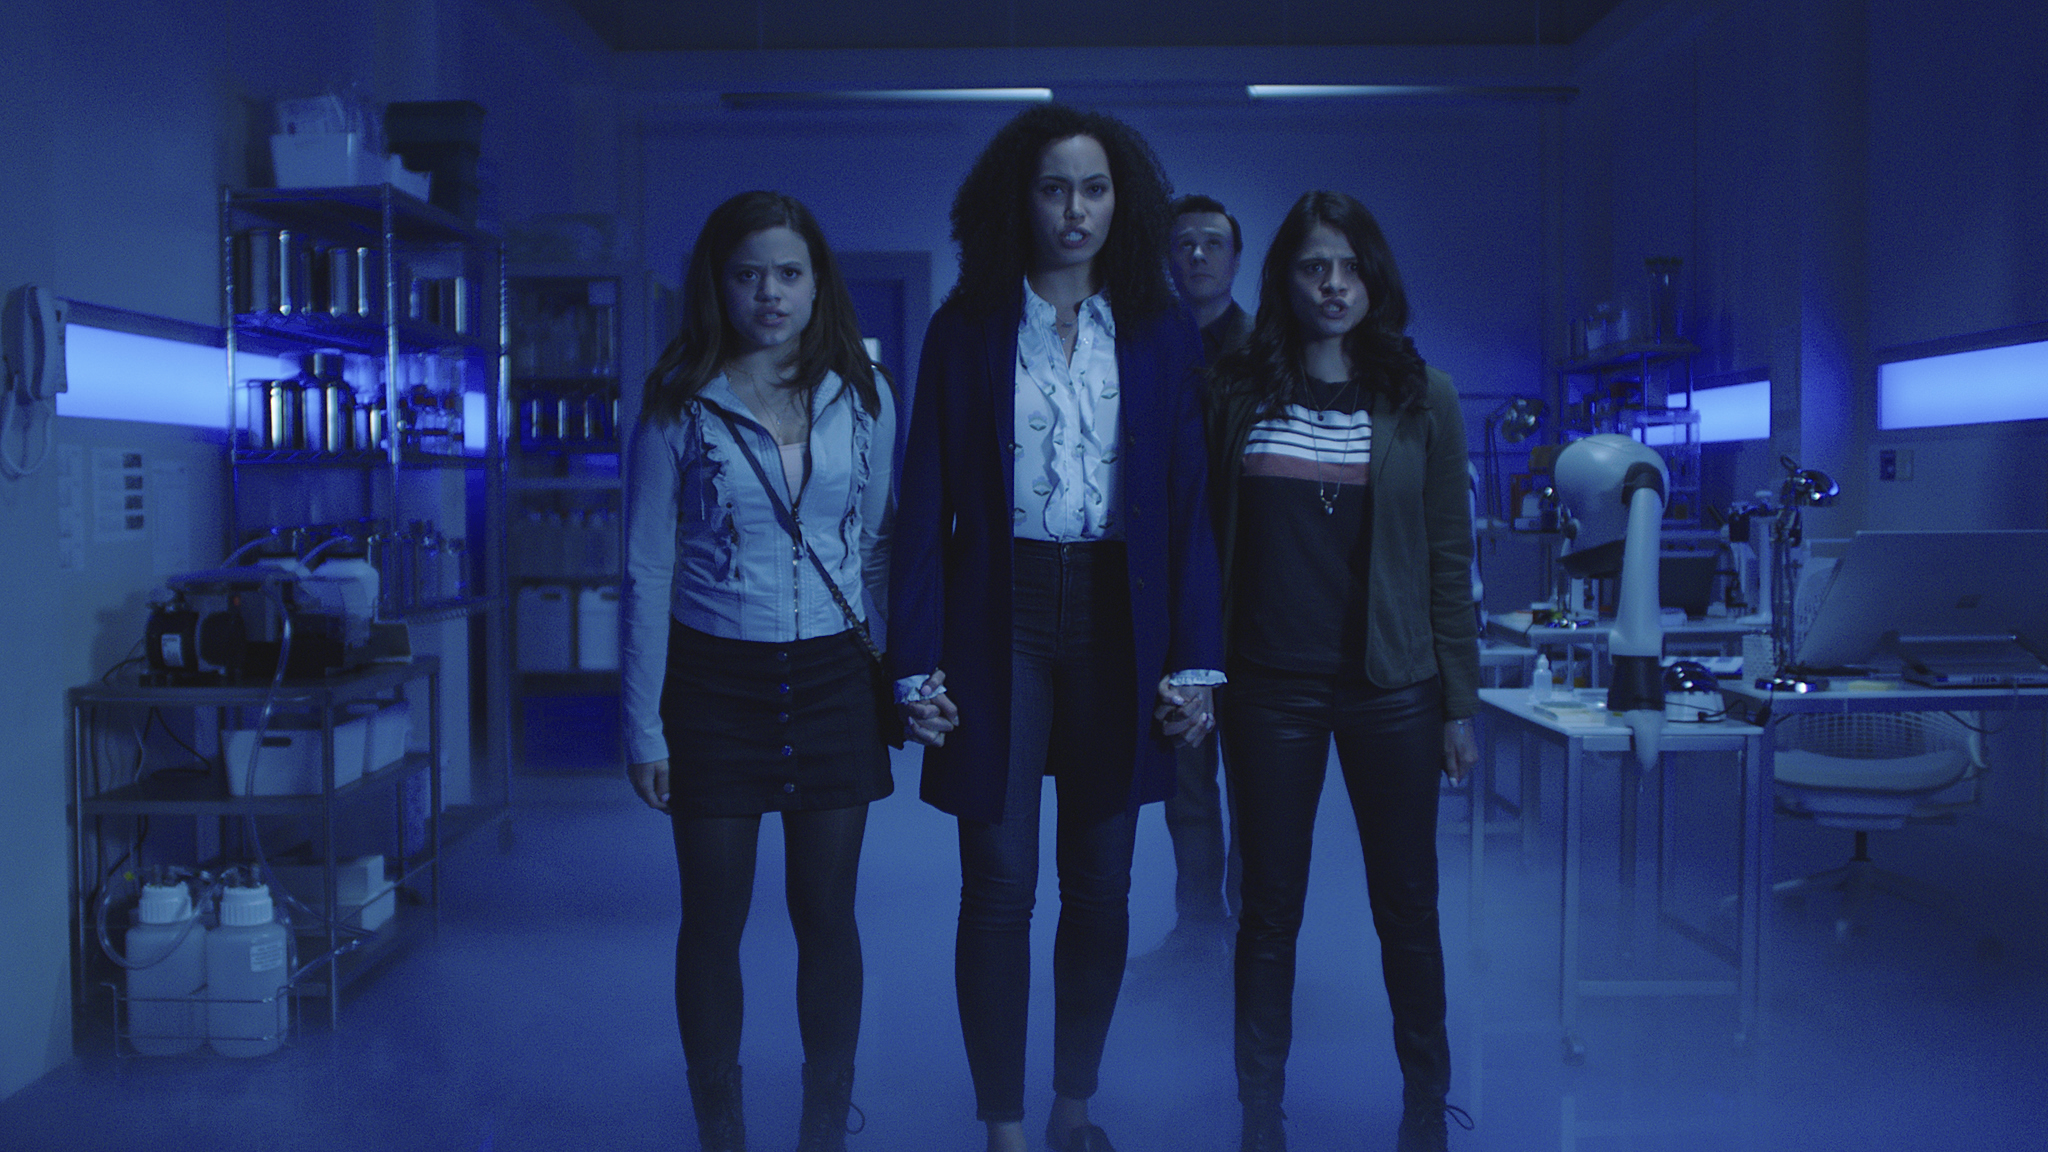 Screen grab from the pilot episode of Charmed. Pictured (L-R): Sarah Jeffery as Maggie Vera, Madeleine Mantock as Macy Vaughn, Rupert Evans as Harry Greenwood and Melonie Diaz as Mel Vera